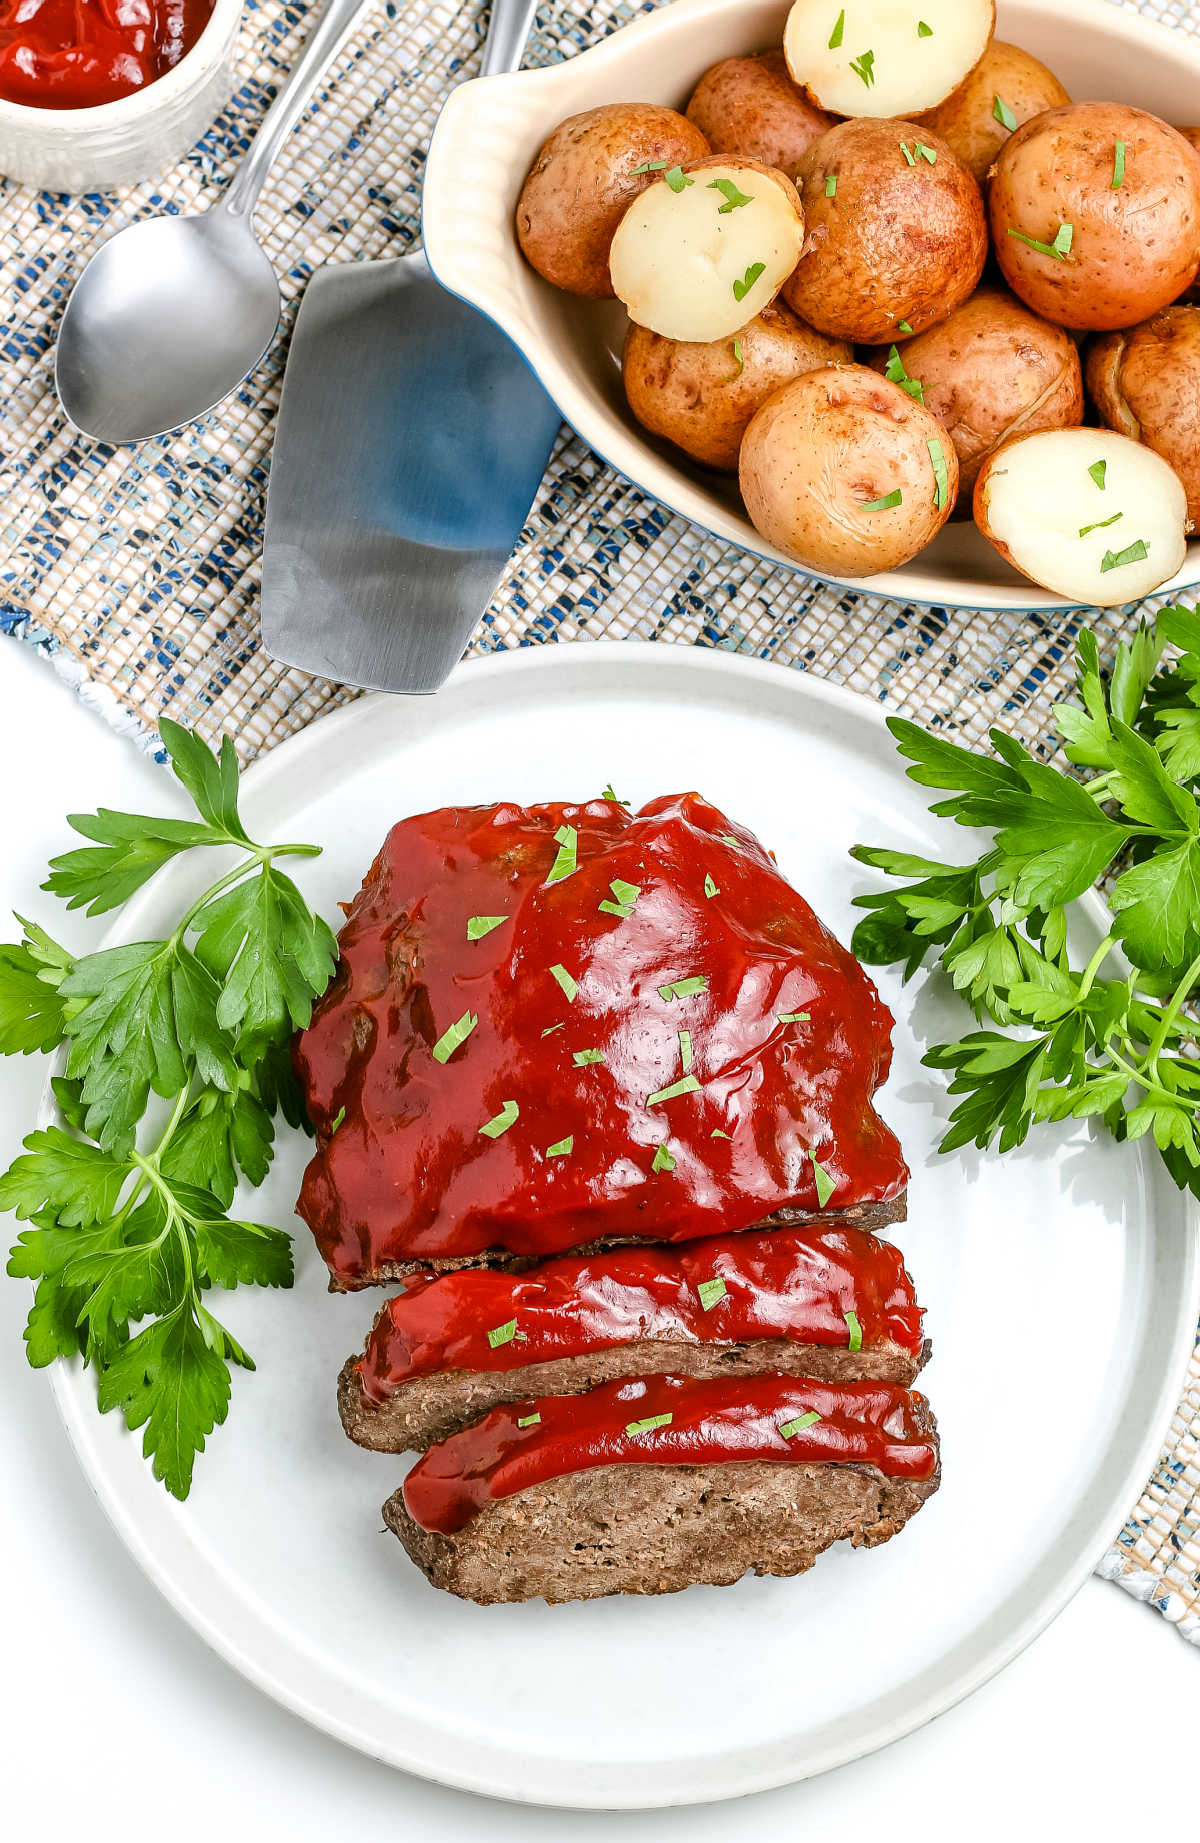 Classic Meatloaf just got a whole lot easier with this Instant Pot Meatloaf and Potatoes recipe! Cook the whole meal right in the sam pot. Flavorful meatloaf and tender seasoned potatoes, just what your family asked for, but with a lot less time! via @easybudgetrecipes